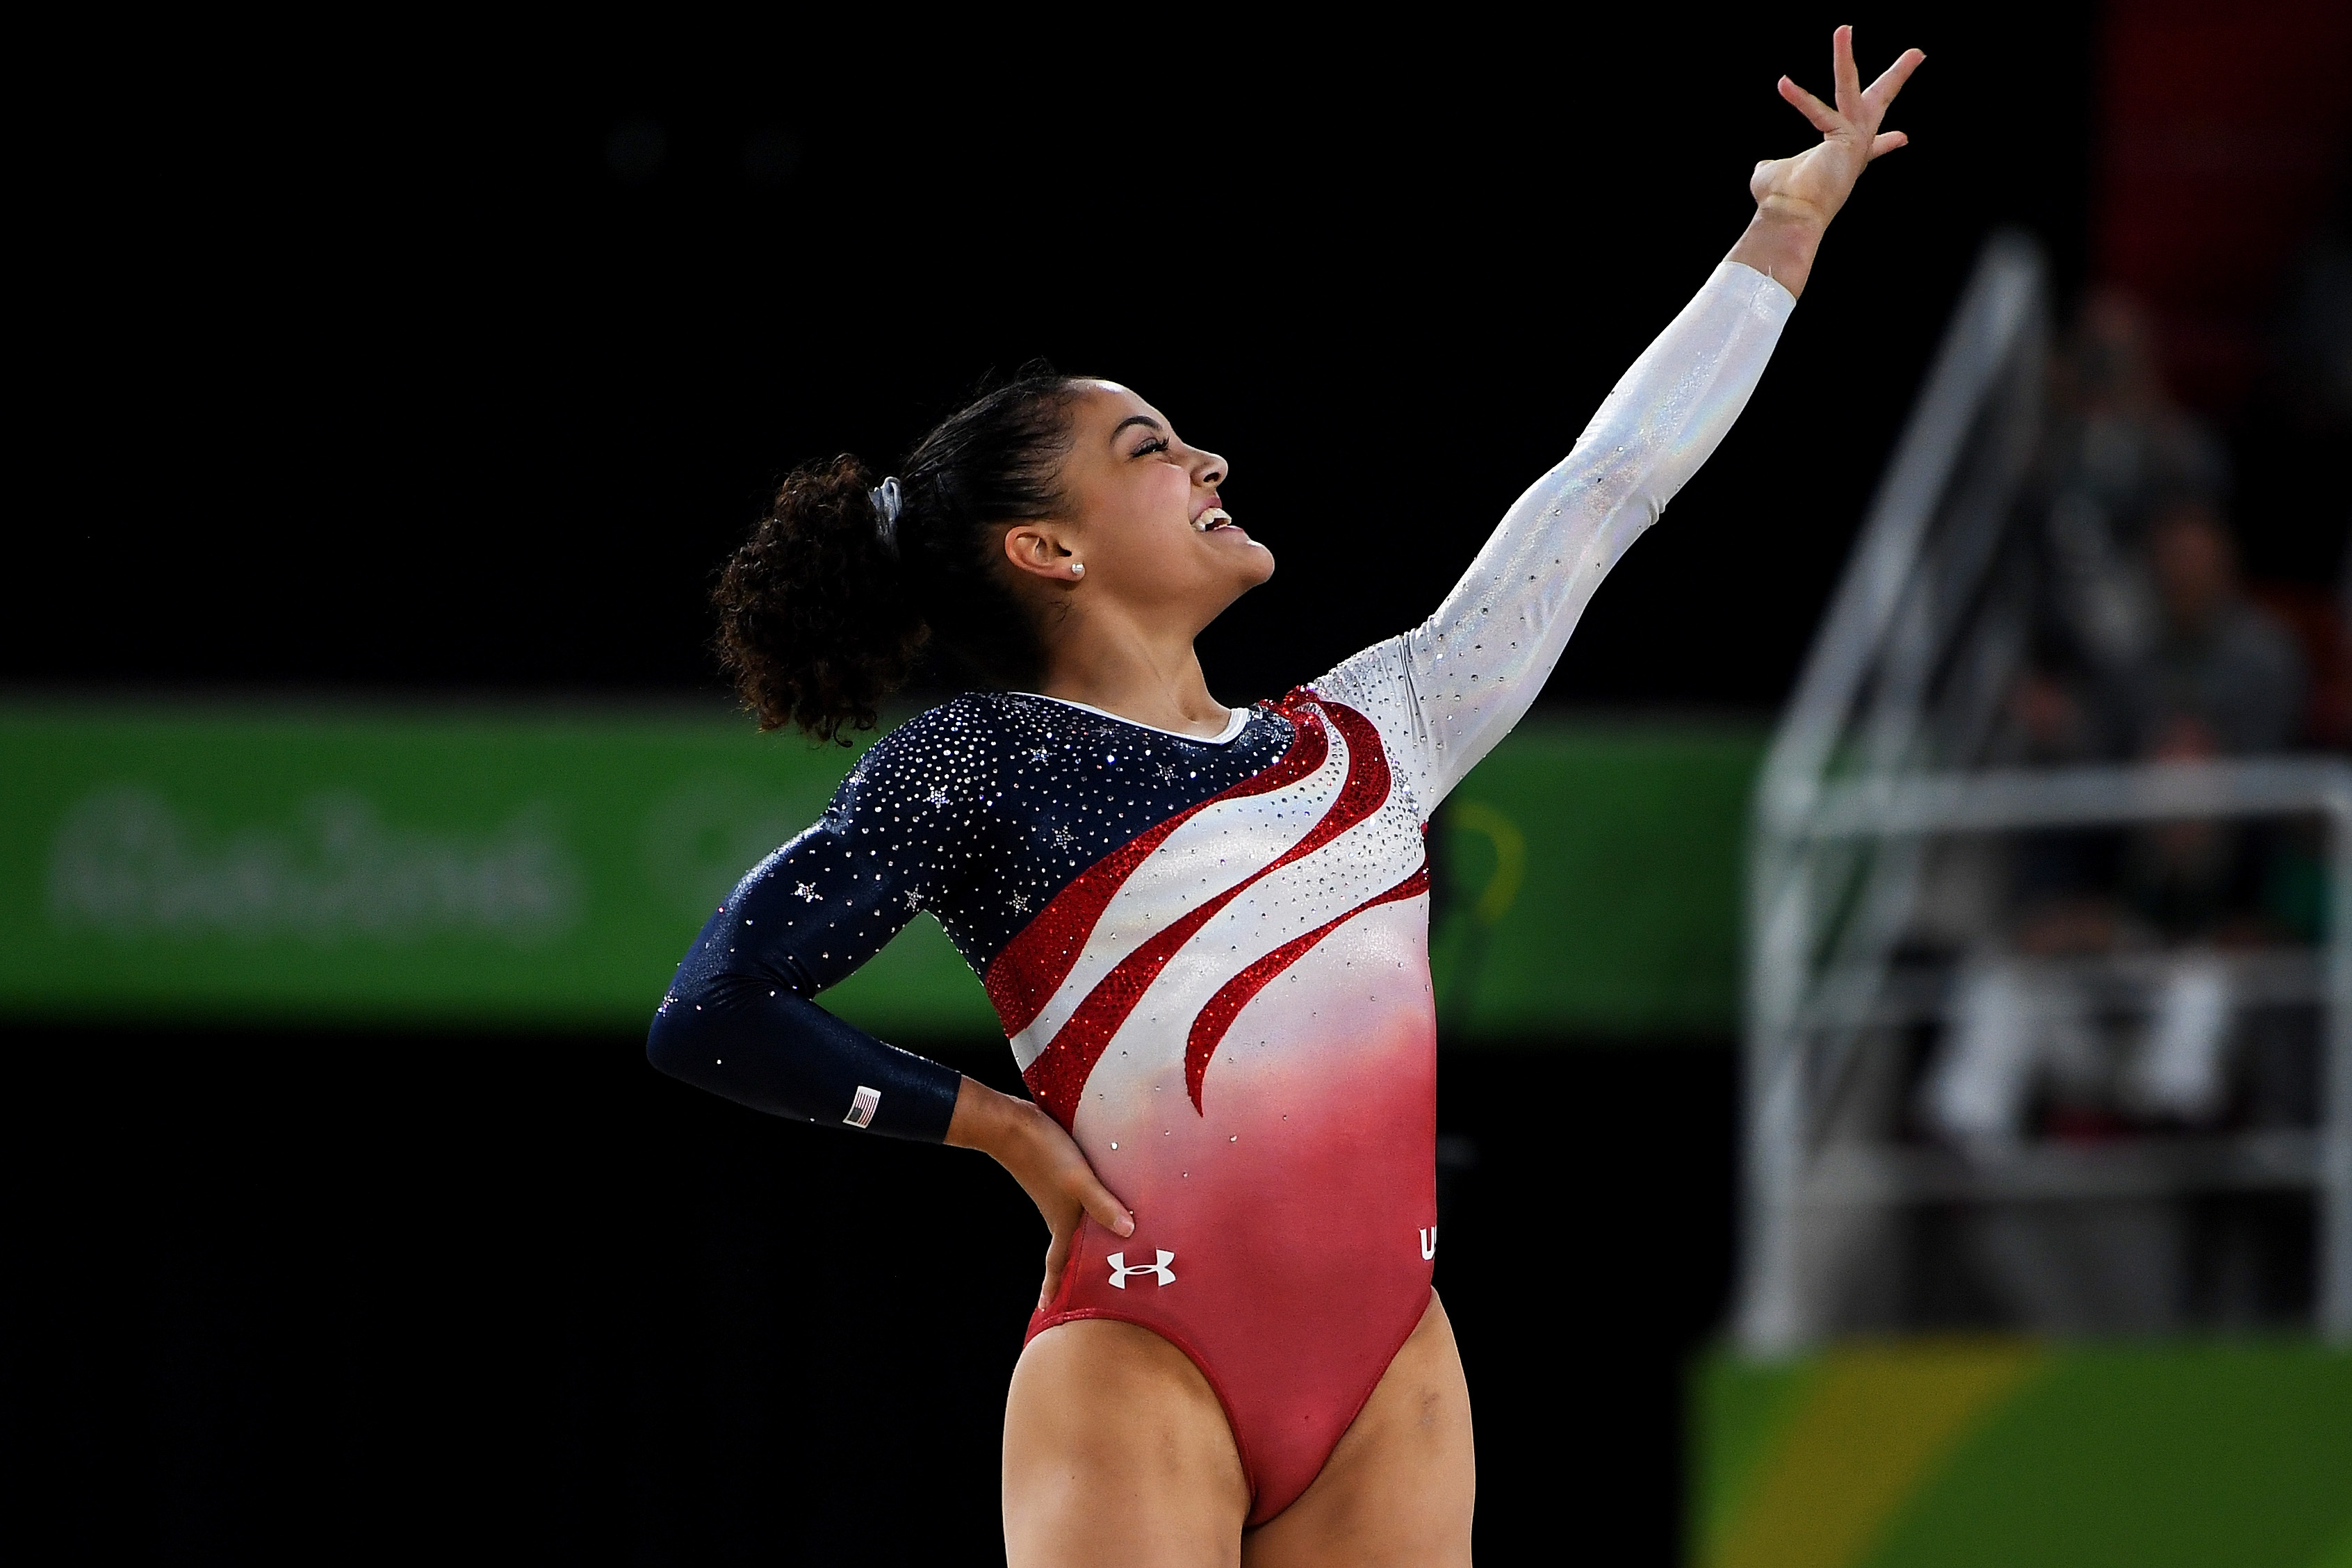 why don't the men have music on floor? rio olympic gymnasts perform